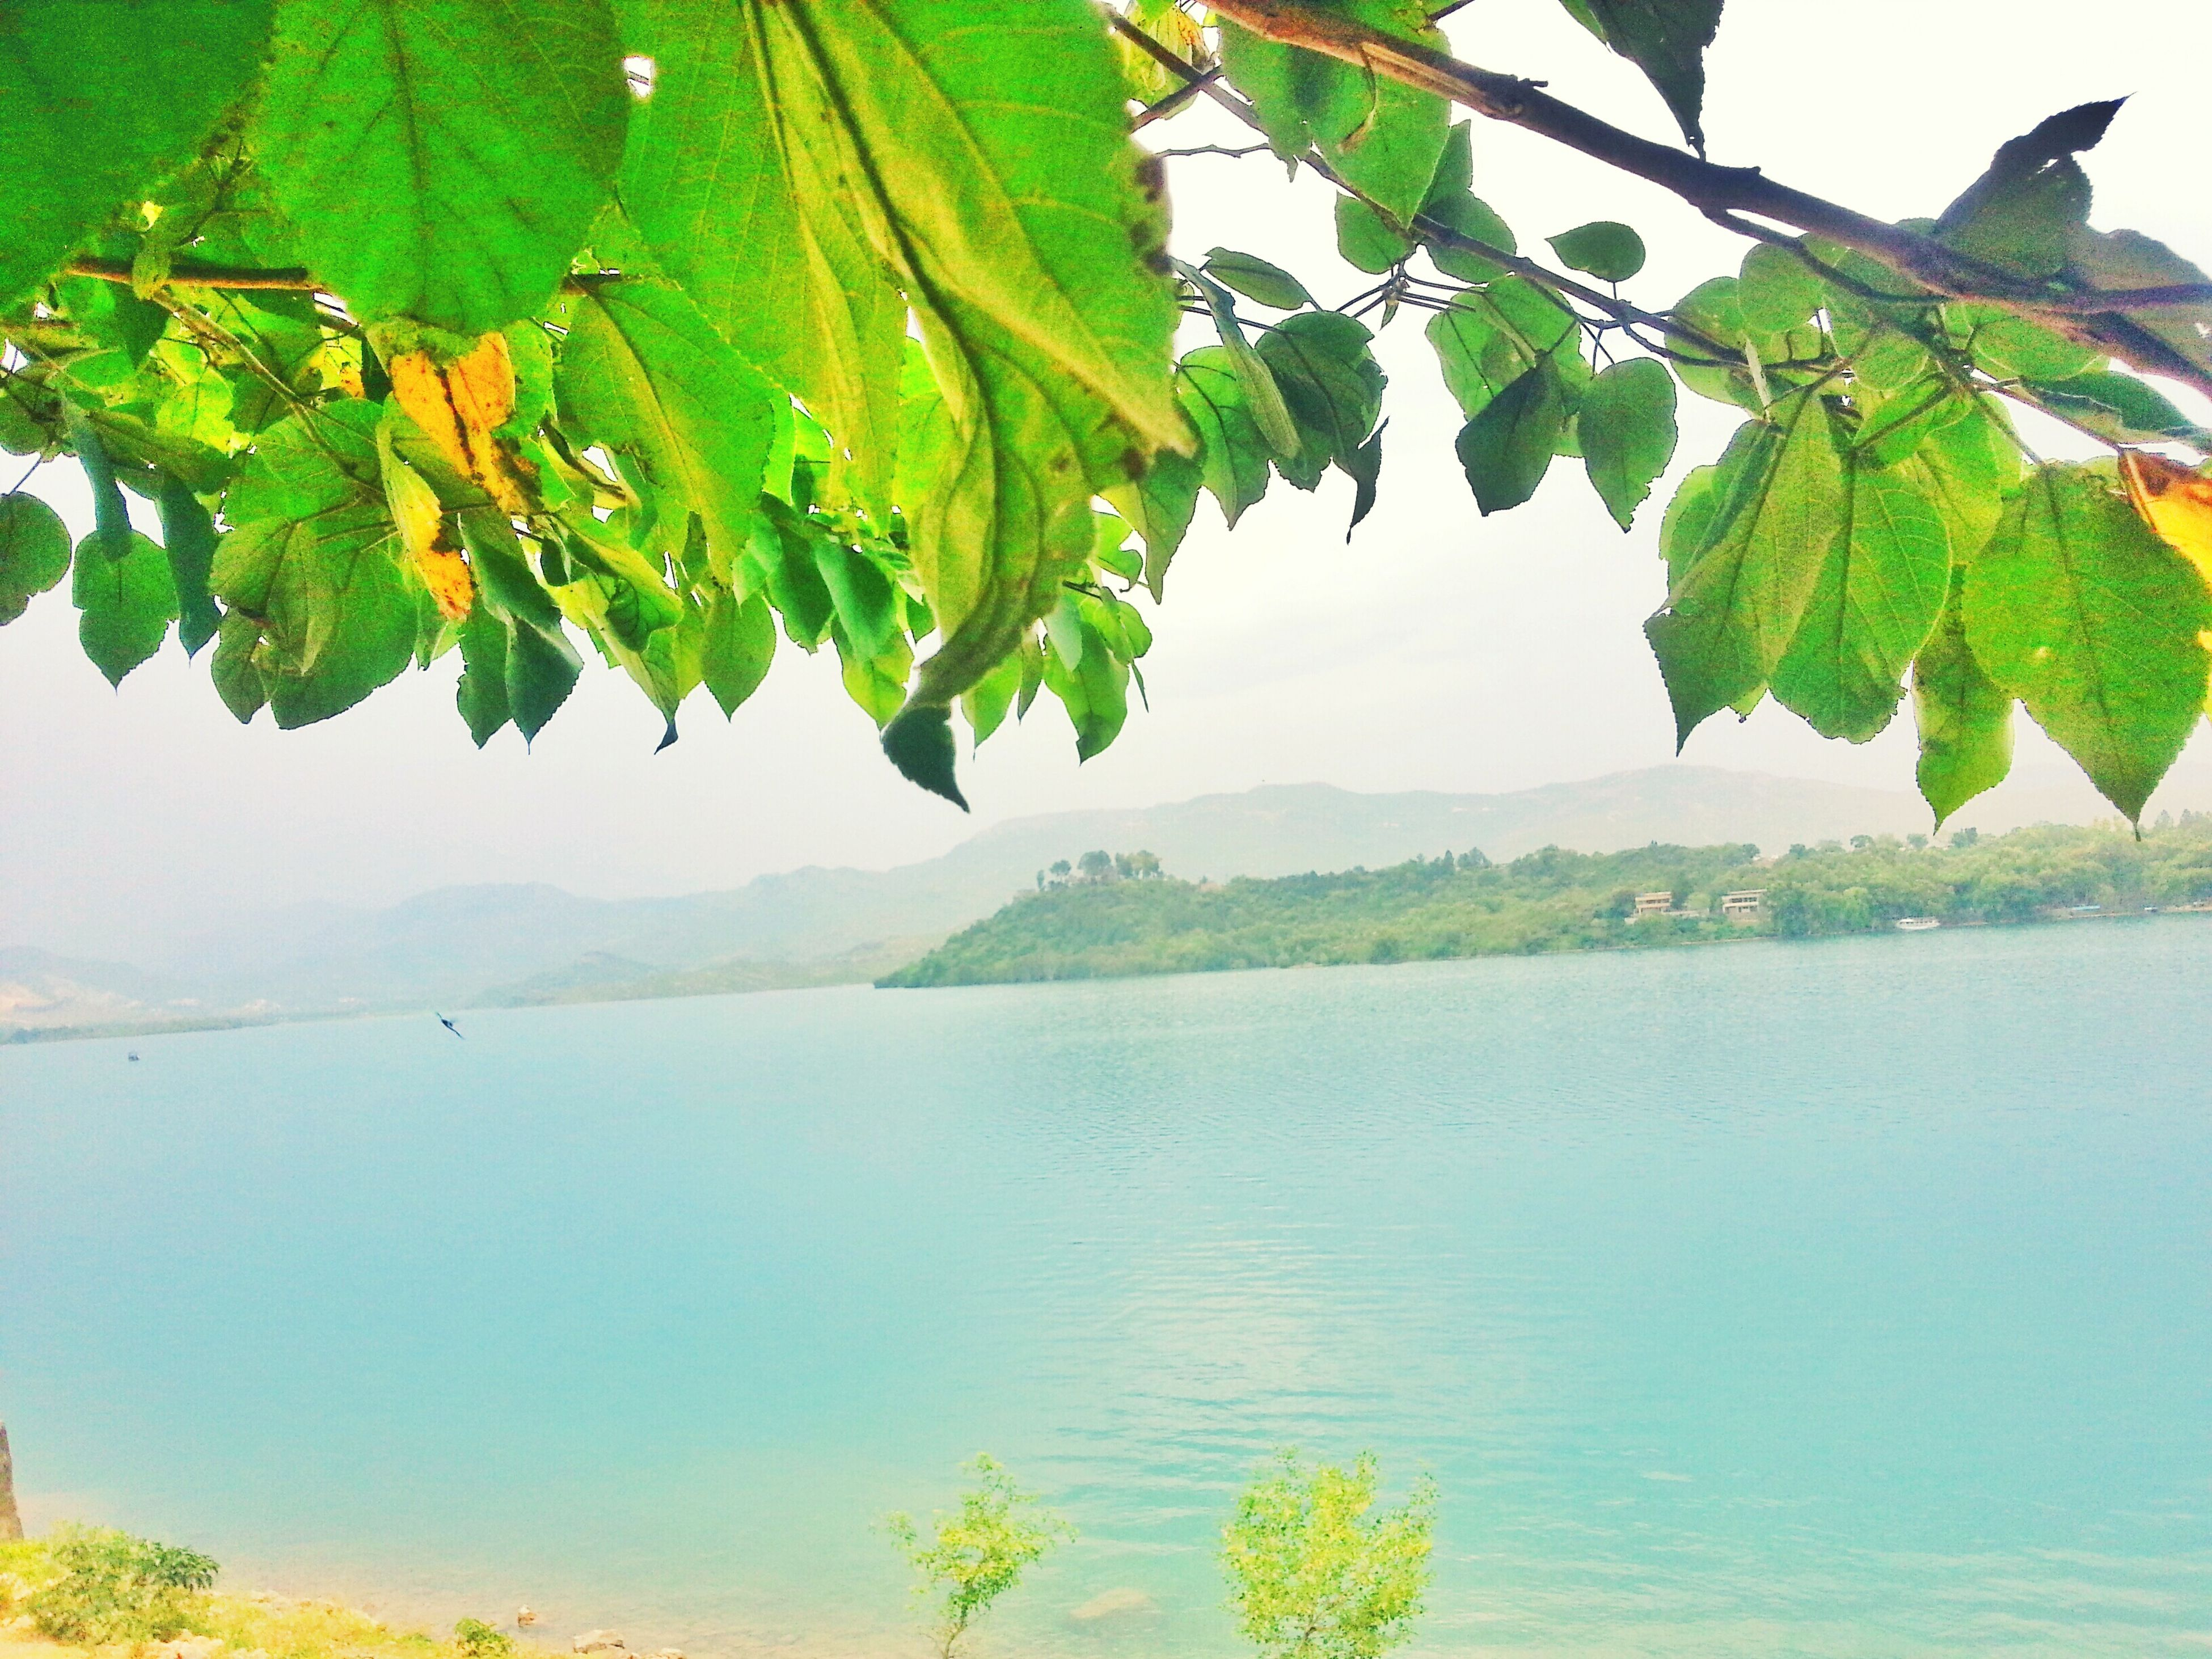 water, tranquility, tranquil scene, beauty in nature, leaf, scenics, nature, growth, tree, sea, lake, branch, plant, green color, idyllic, sky, clear sky, day, horizon over water, waterfront